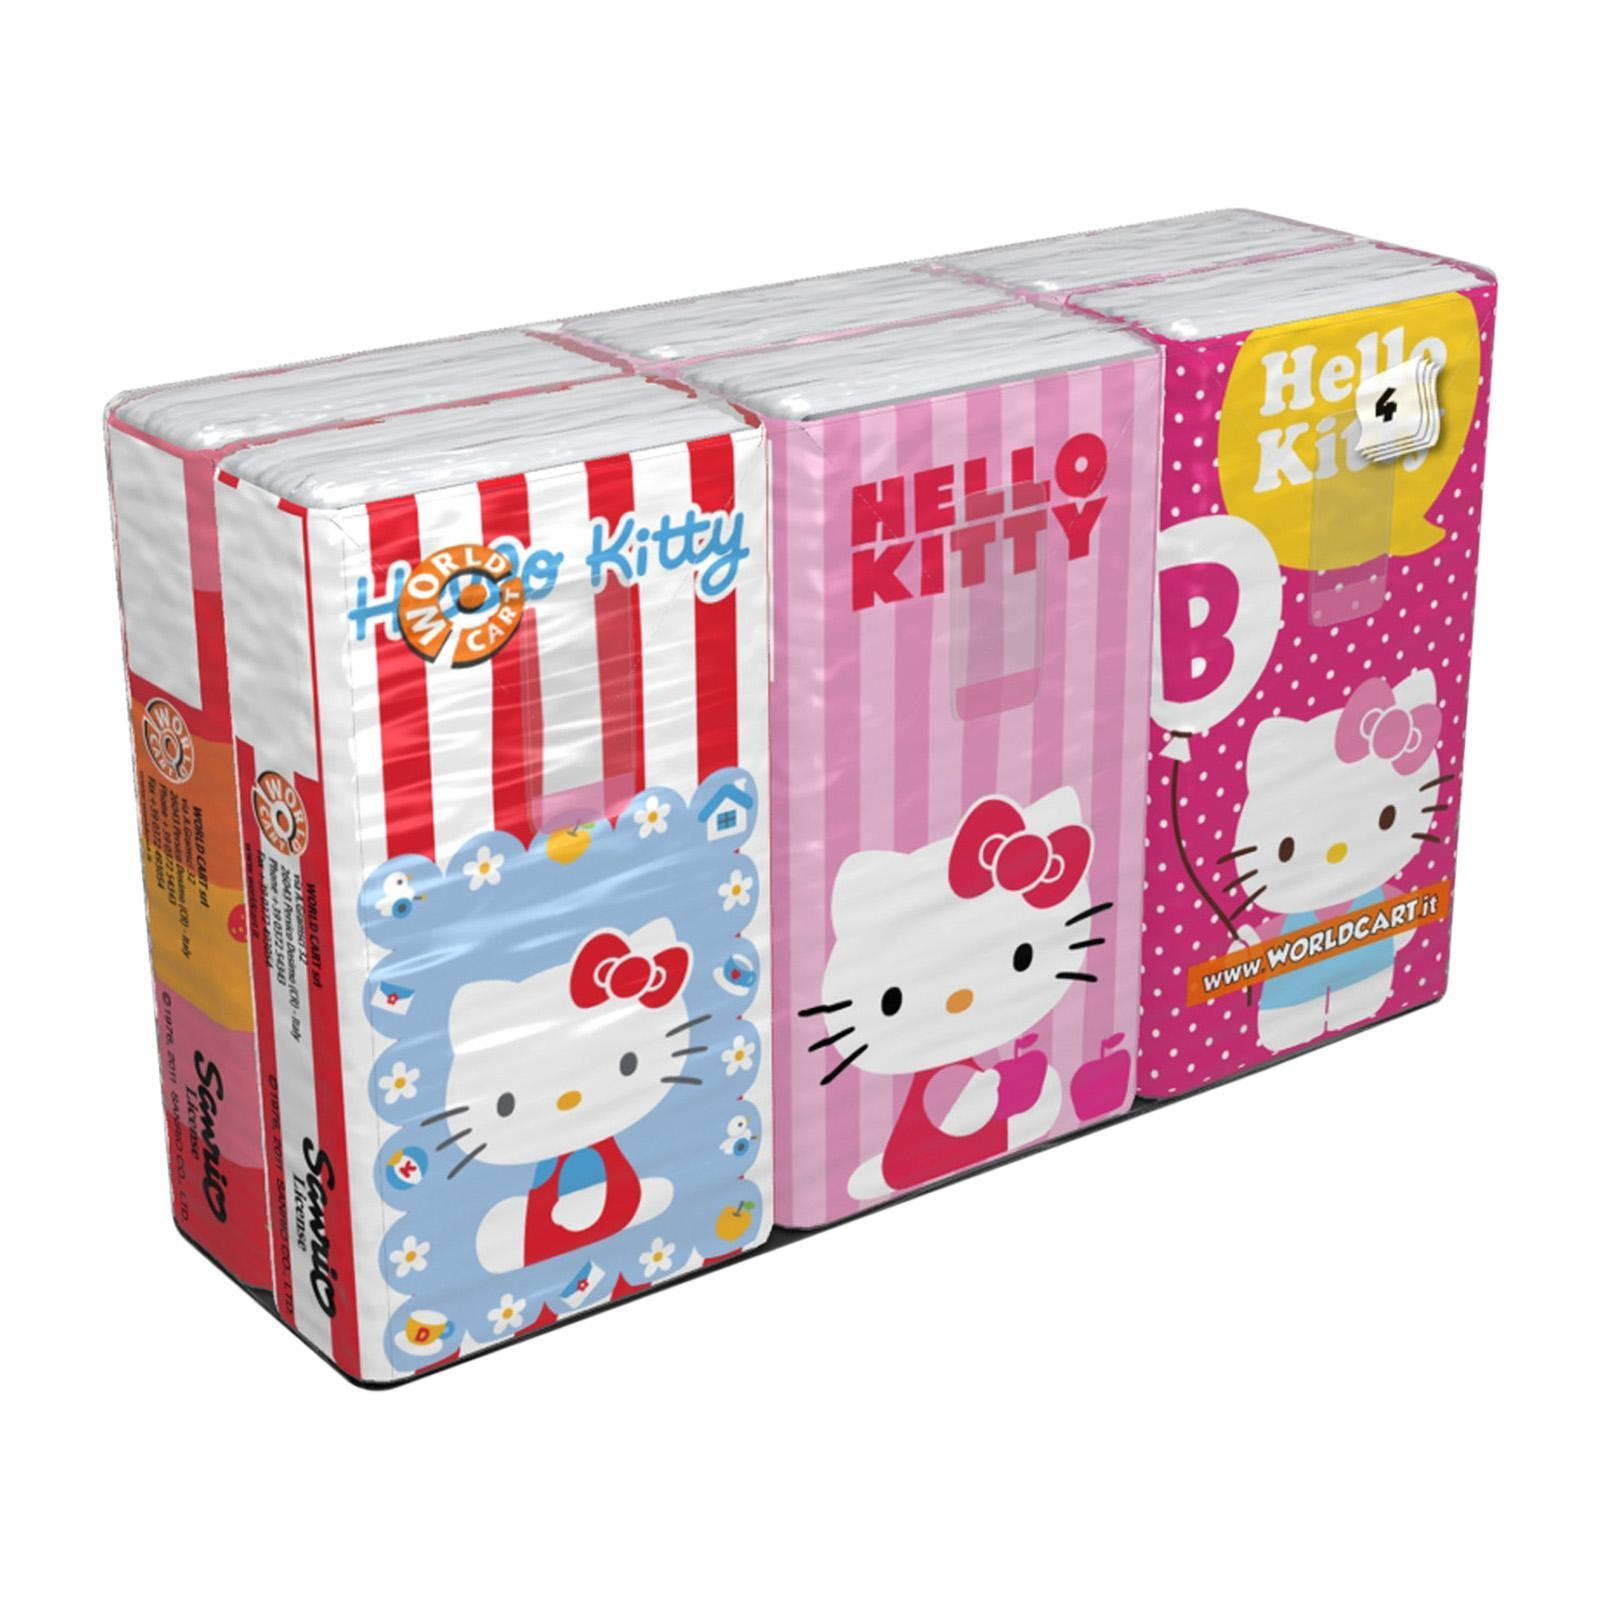 Sanrio Hello Kitty Printed Soft Tissue (Color)